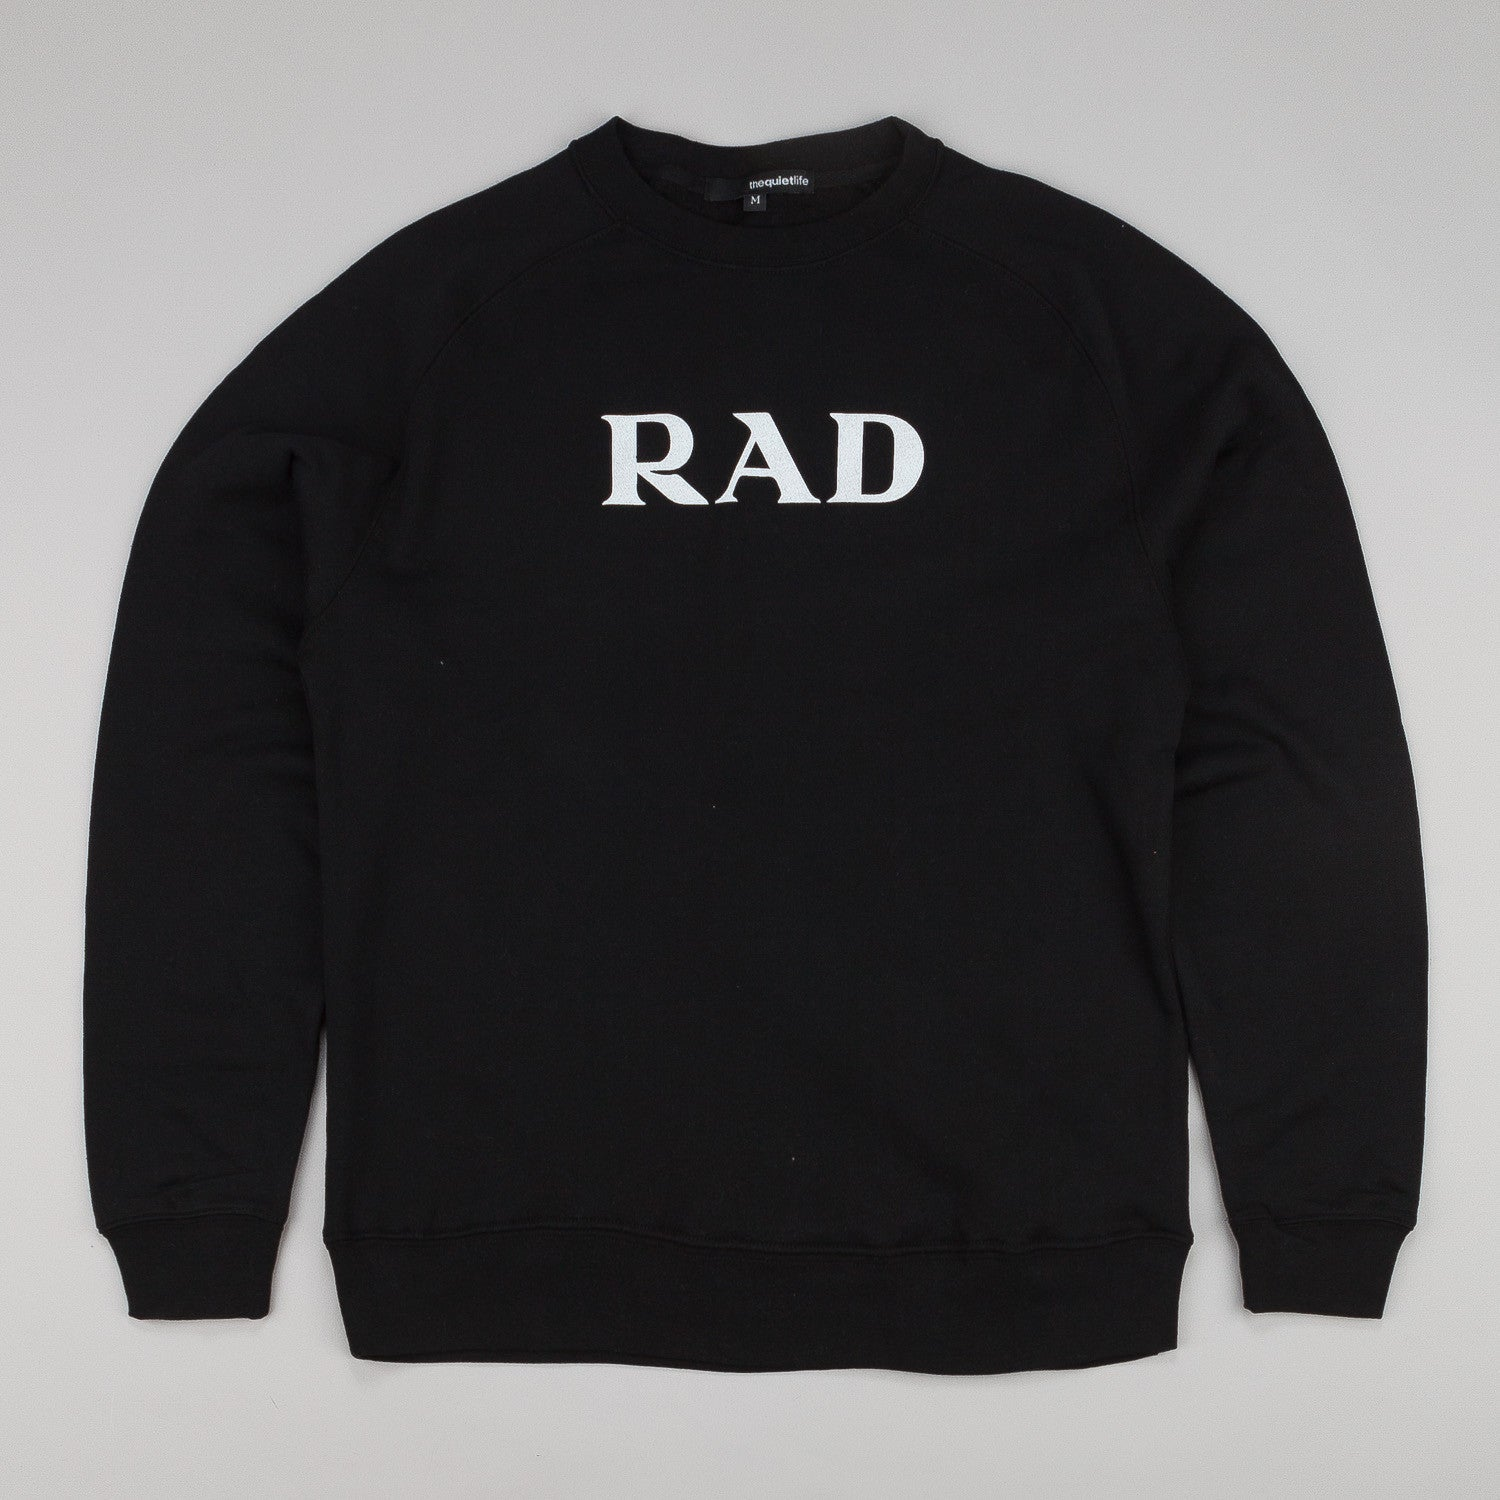 The Quiet Life Rad Crew Neck Sweatshirt